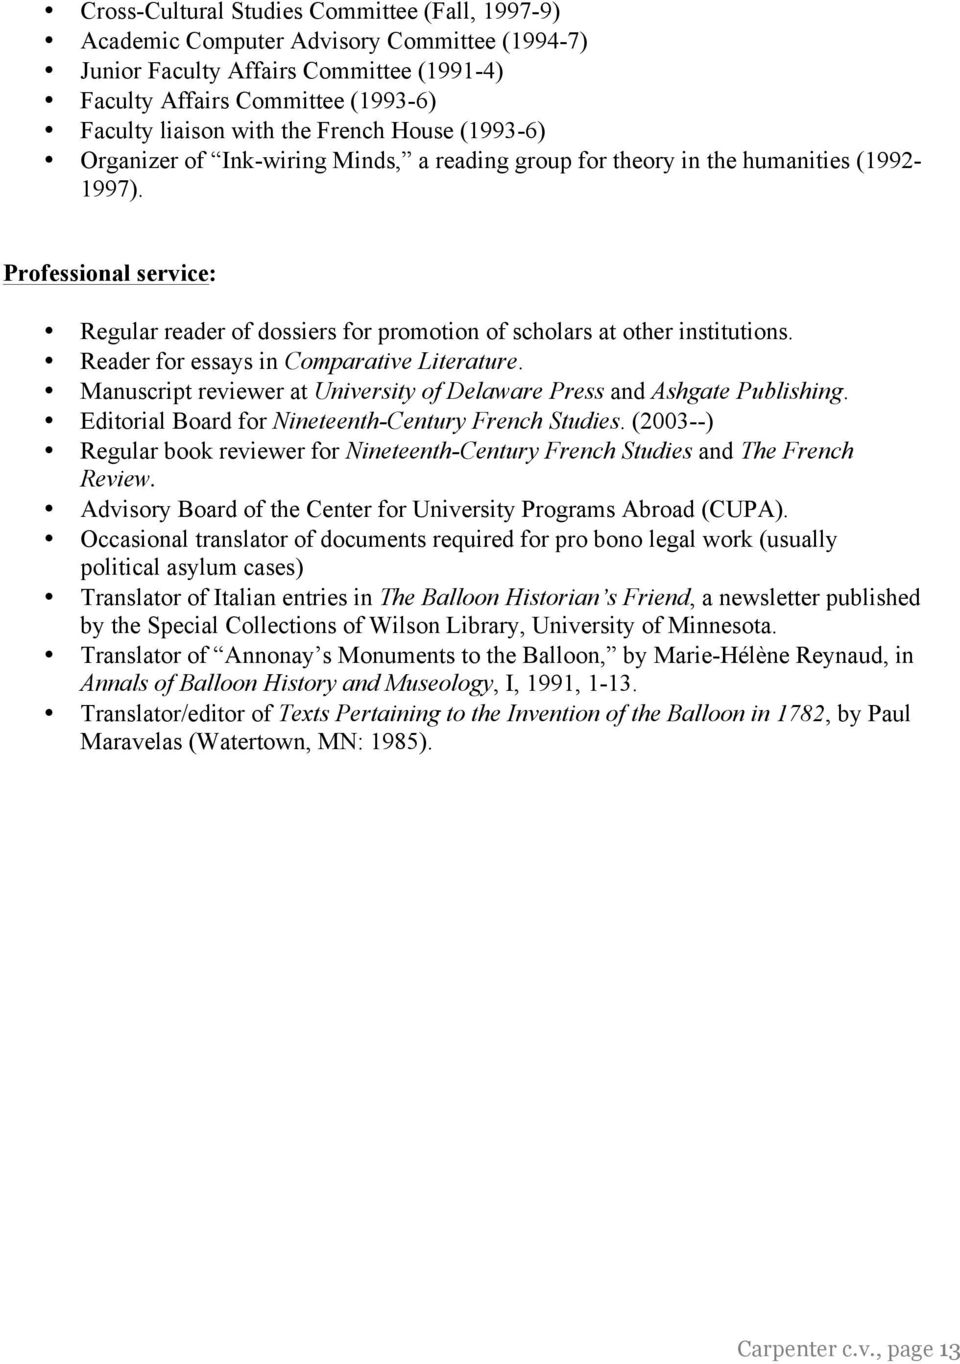 Professional service: Regular reader of dossiers for promotion of scholars at other institutions. Reader for essays in Comparative Literature.